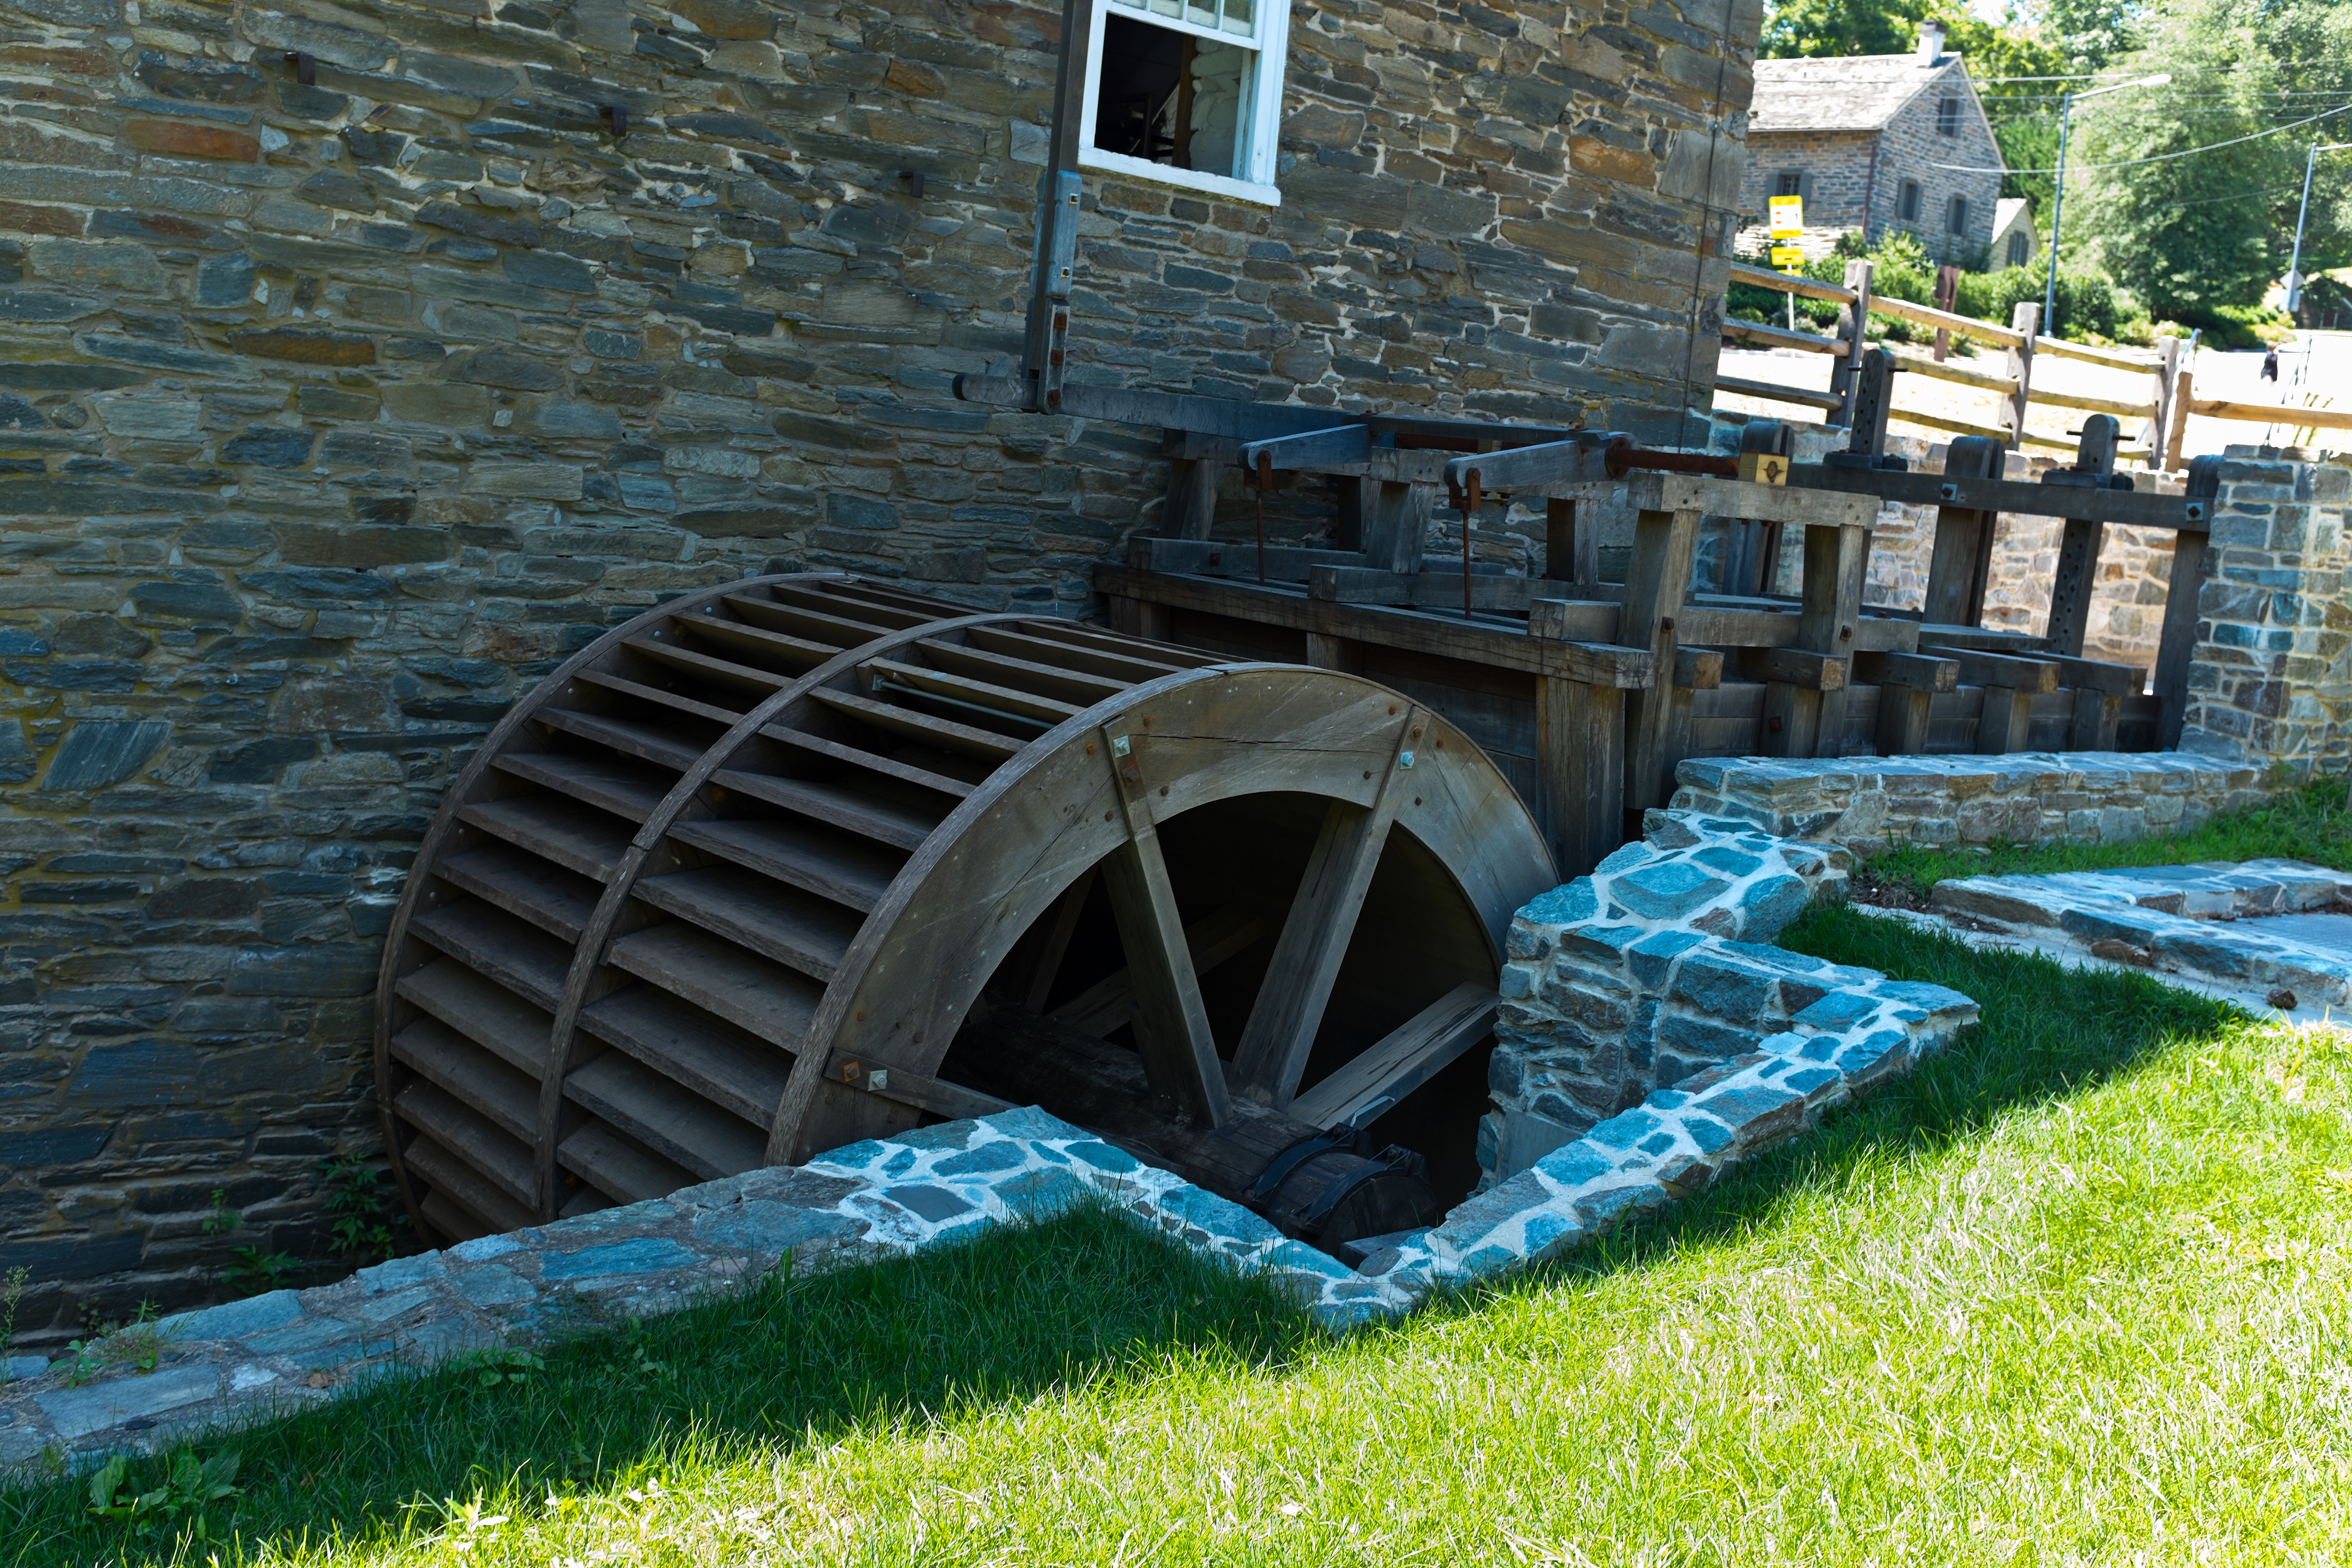 Water Wheel Mill Pictures File:peirce Mill Water Wheel